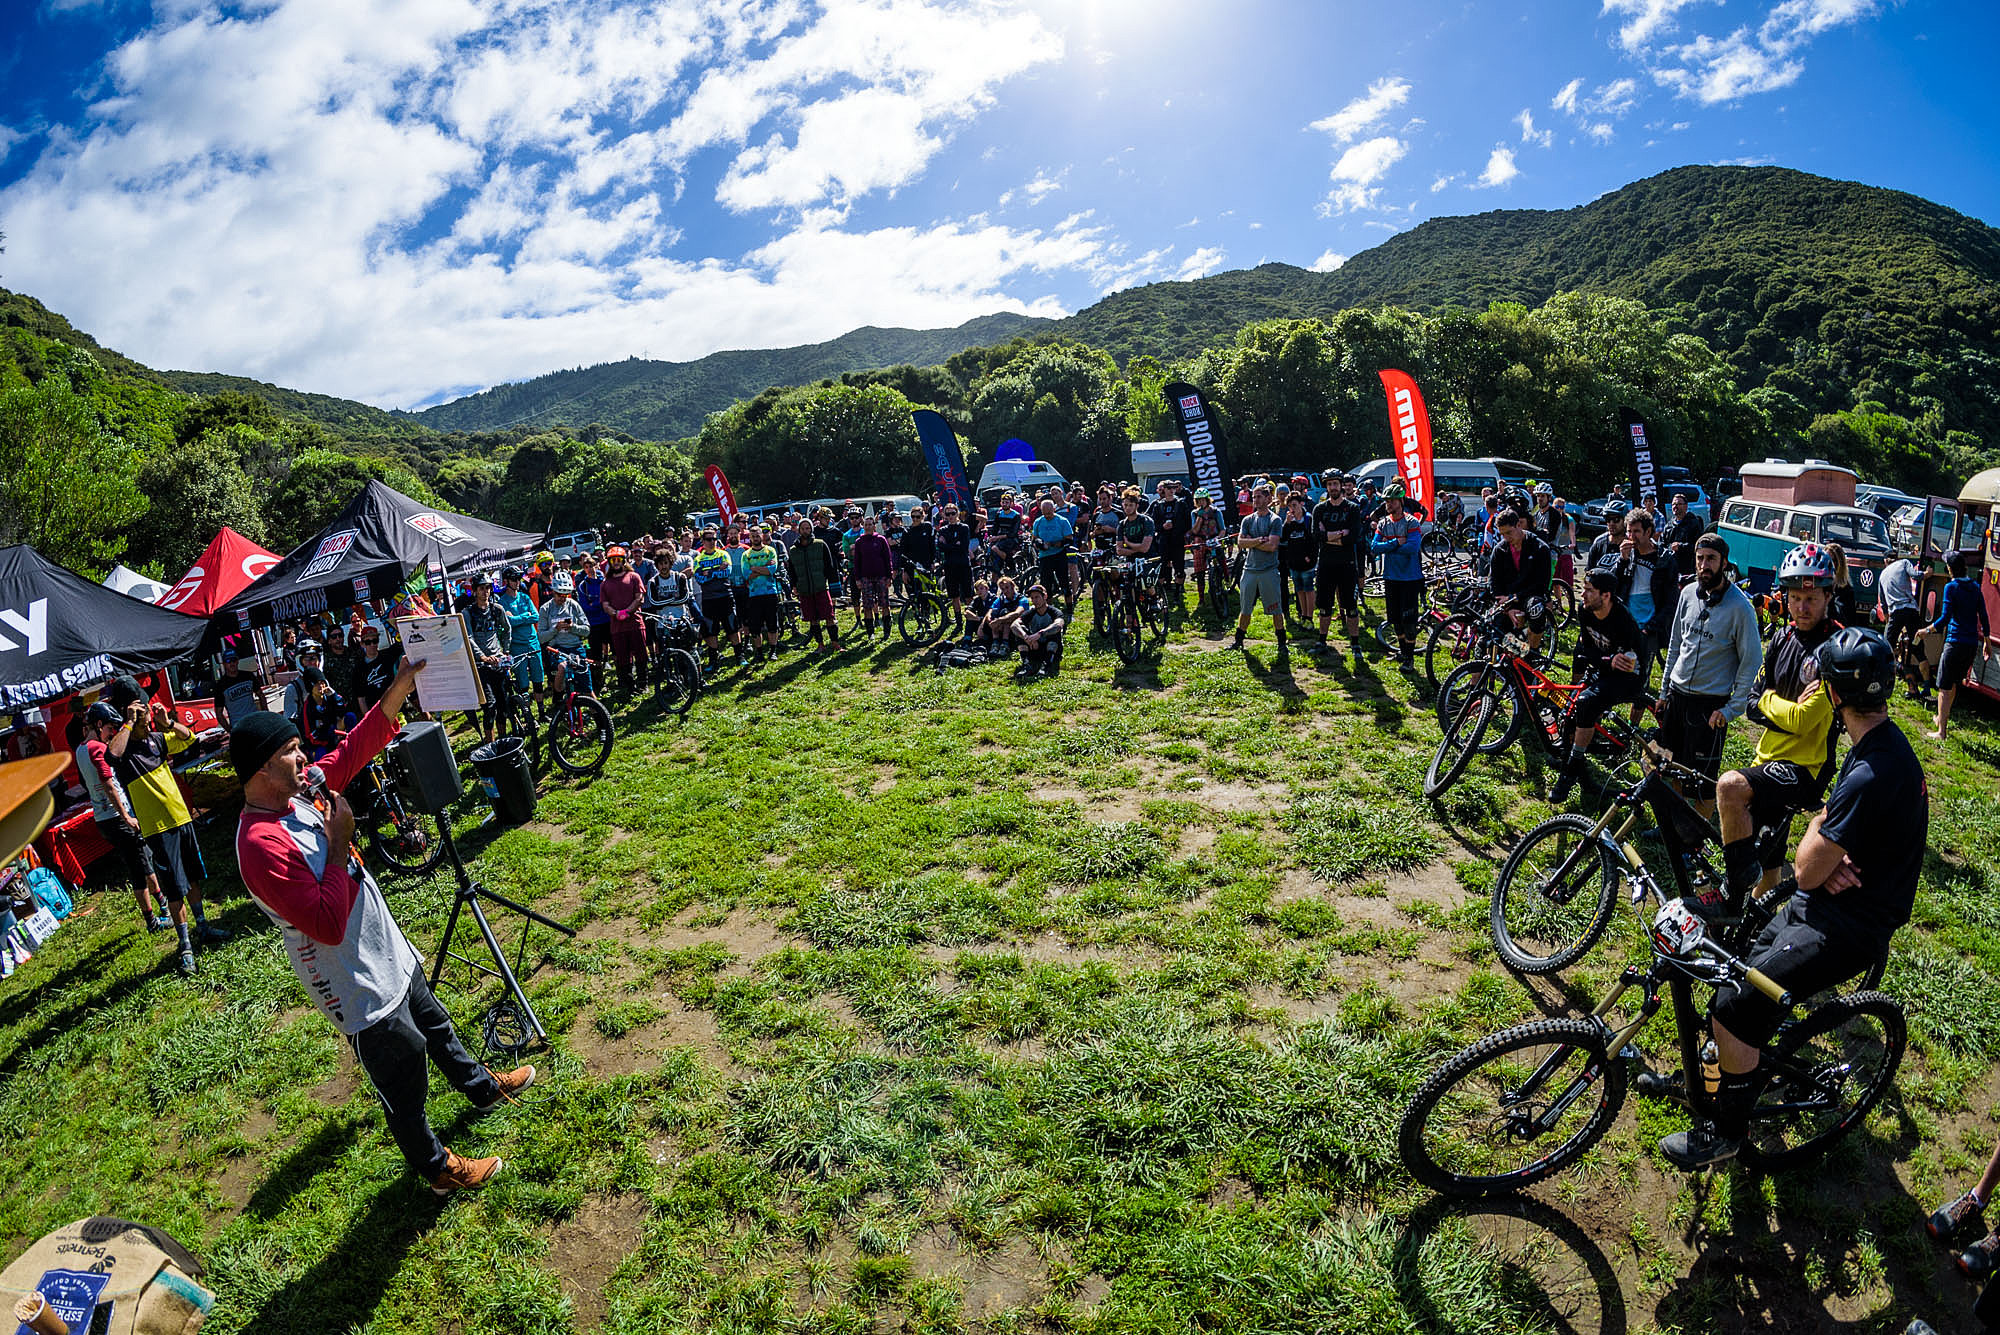 Organisers Sven and Anka Martin have spent their summer pulling together an event that will terrify and delight racers in equal measure.